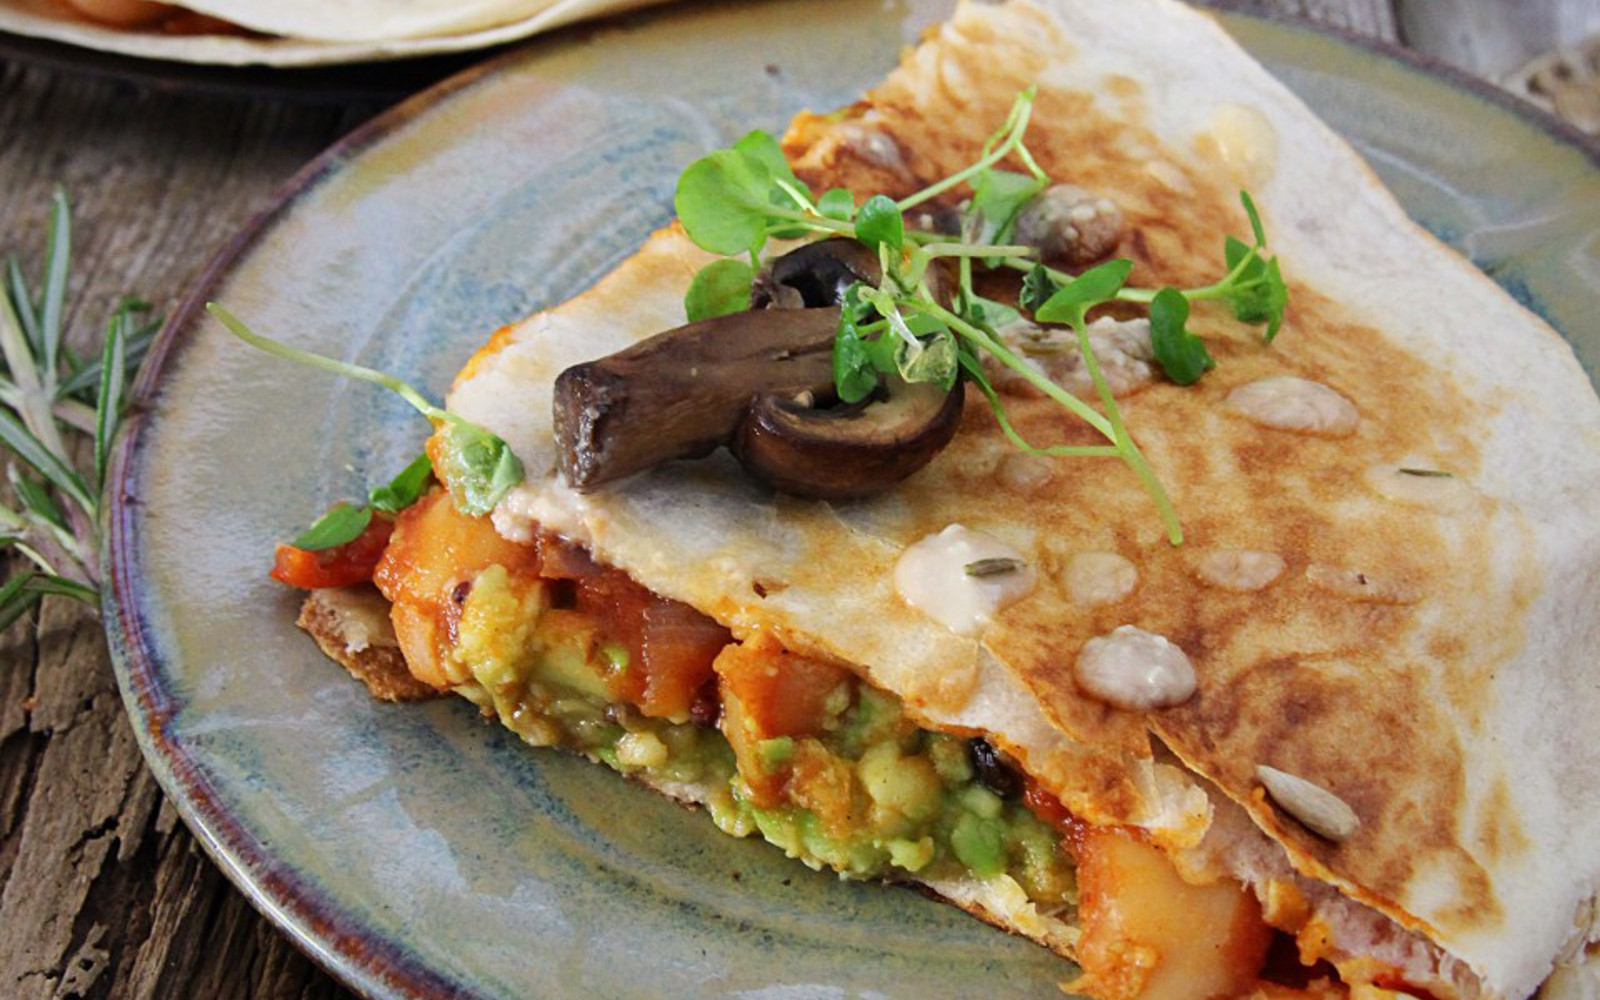 Spicy Bean, Mushroom and Avocado Quesadilla